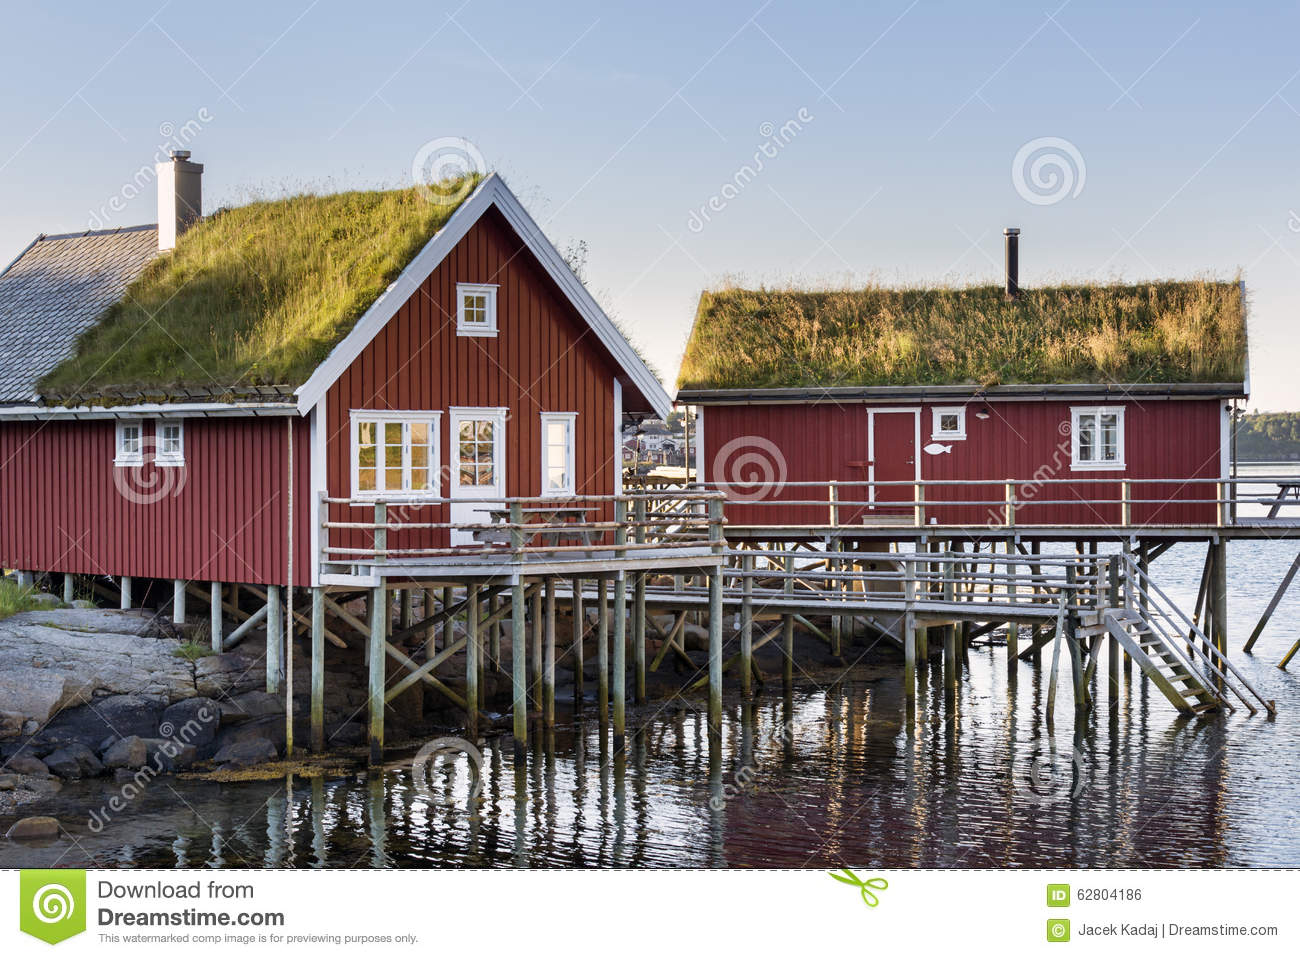 Wooden house at the lofoten archipelago norway stock for Norway wooden houses